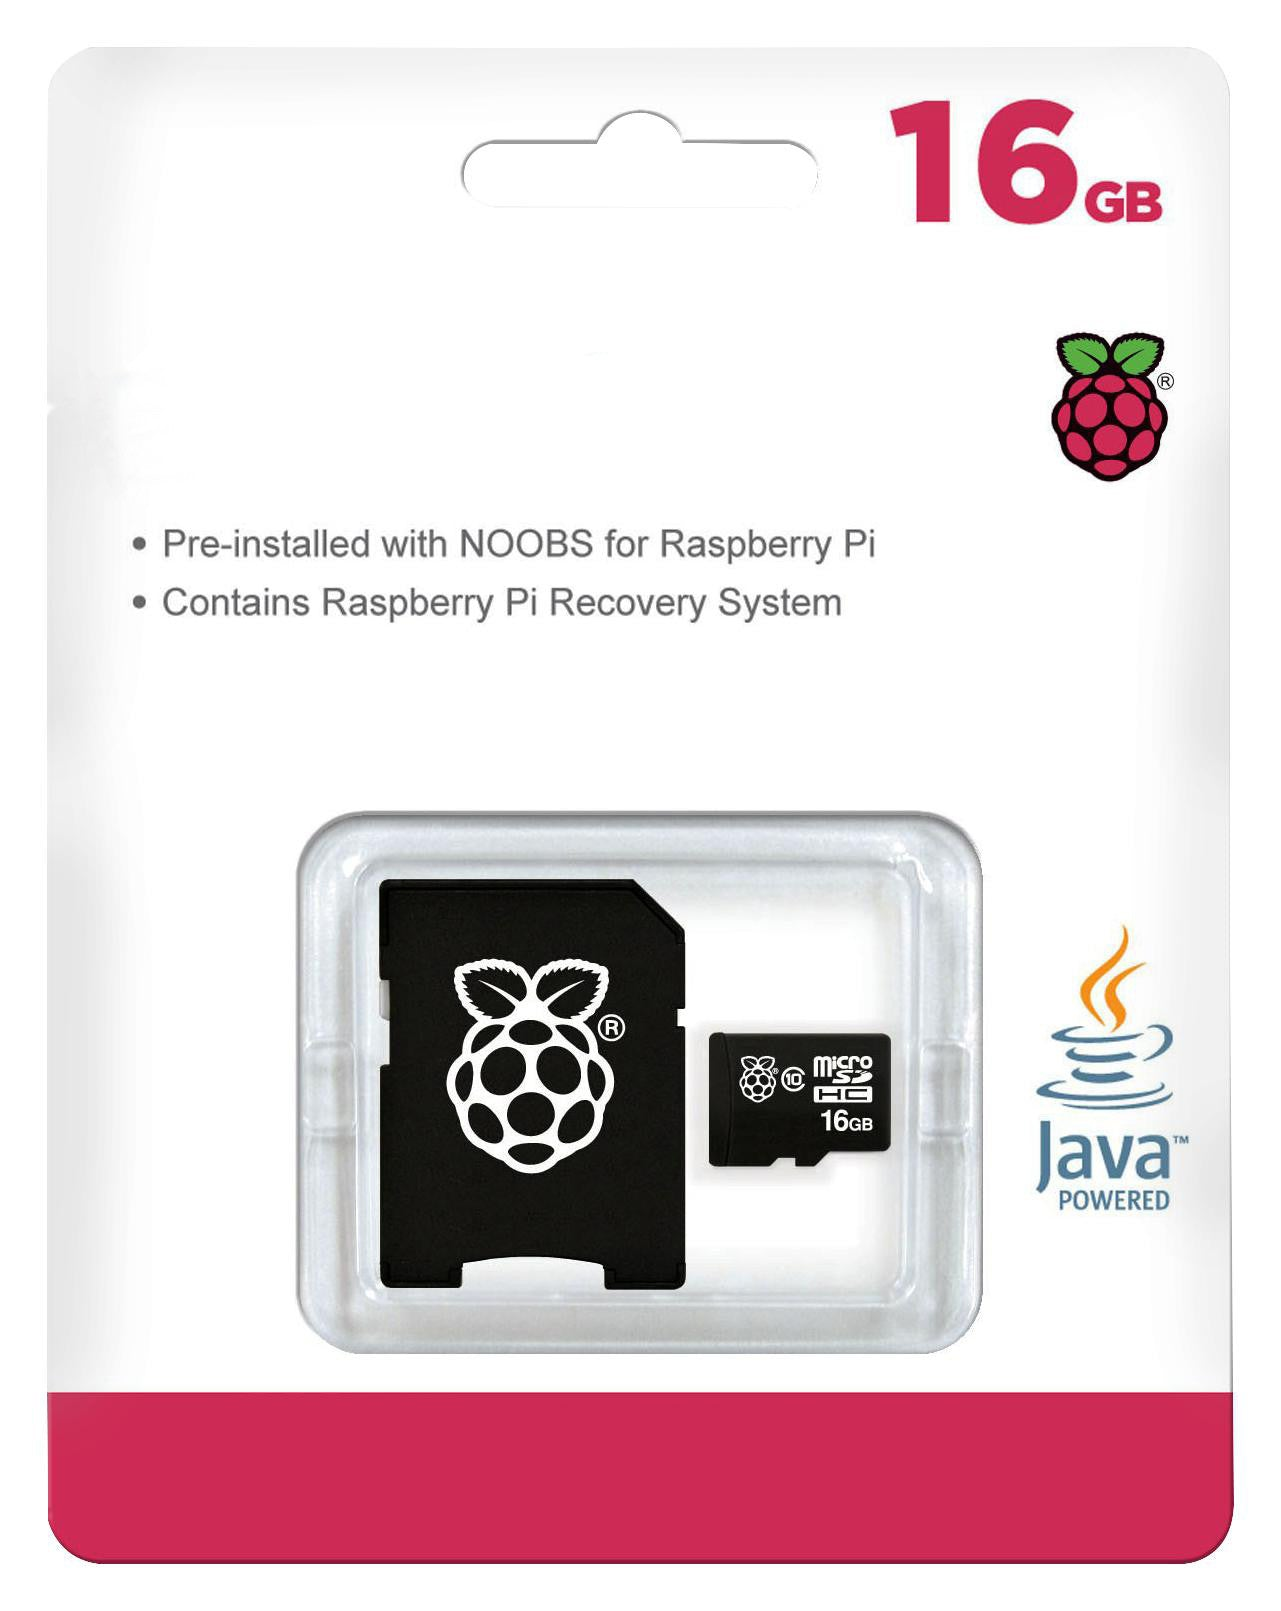 16GB Micro Sd Pre-installed NOOBS for Raspberry Pi Software - BNR Industrial